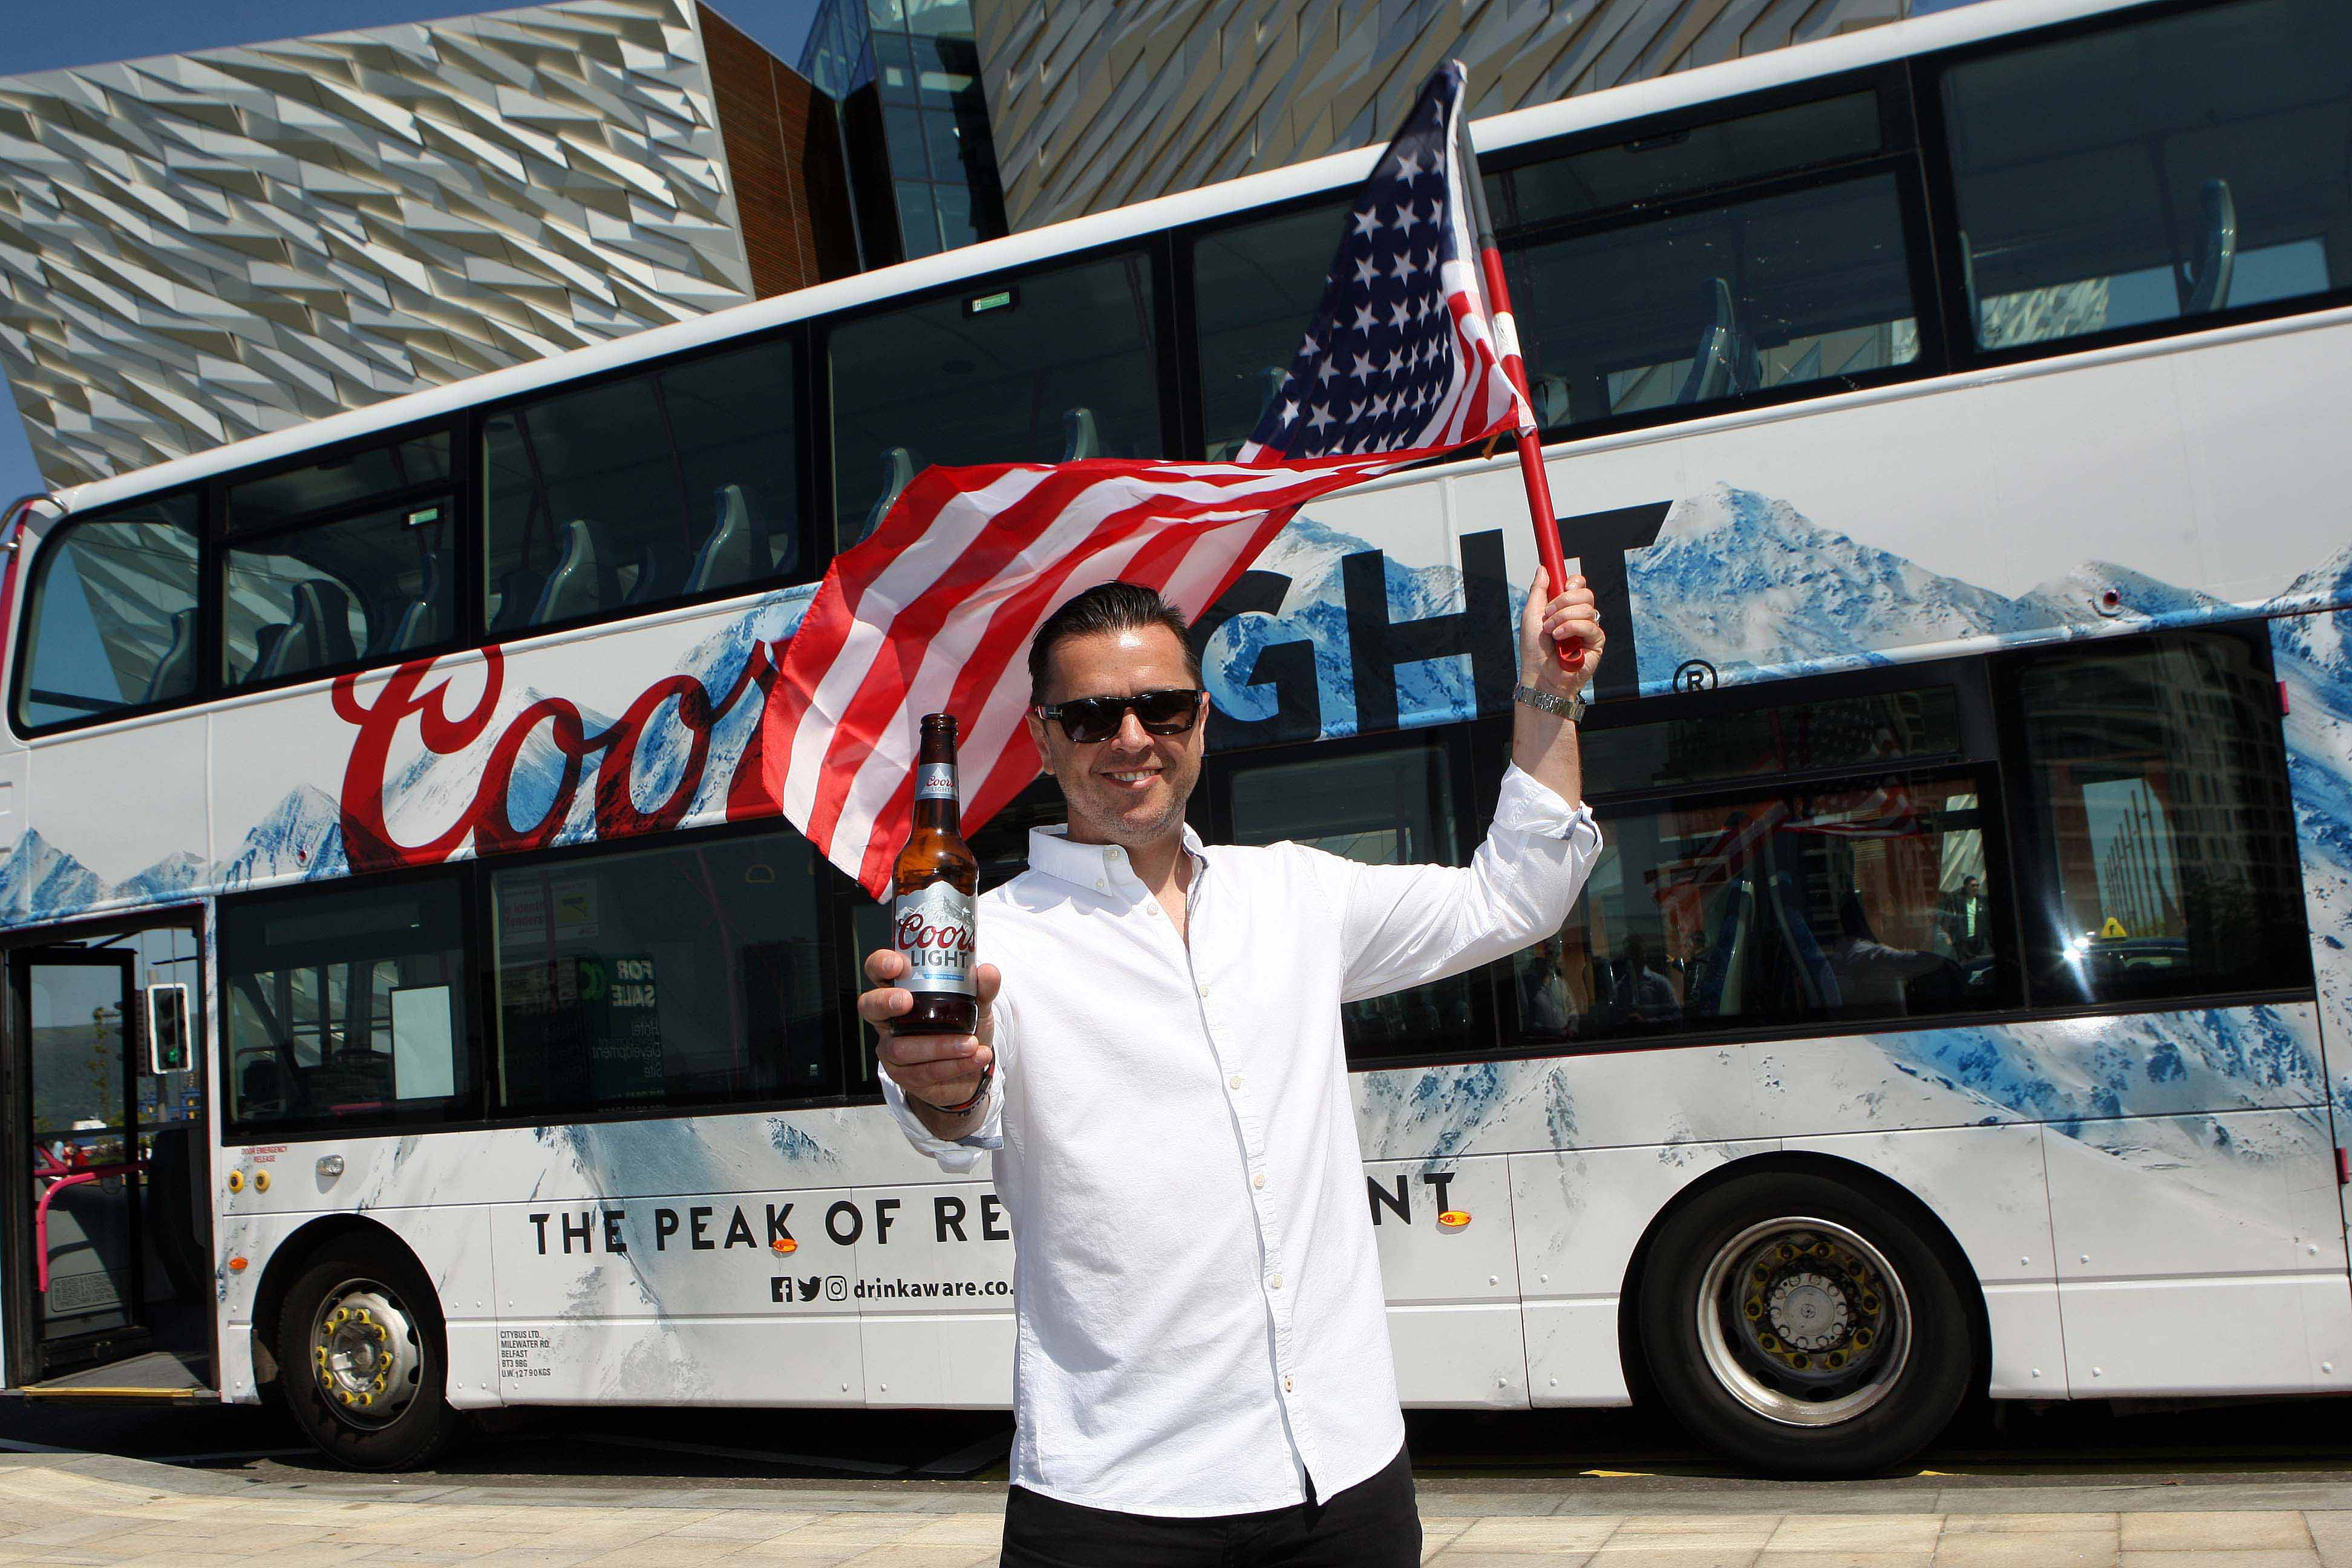 CHEERS!: Local personality Pete Snodden is flying the flag for Coors Light as they celebrate a record year in NI. Latest figures show that more than two in every five bottles of beer sold in Northern Ireland on trade is a Coors Light, with sales still continuing to grow. To mark the occasion, Coors Light has launched a huge 'experiential' campaign, giving local beer lovers the chance to win their very own experience of a lifetime and create their own iconic memories, whether they want to go scuba diving in the Coral Reef or travel to the home of Coors Light in the Rocky Mountains.